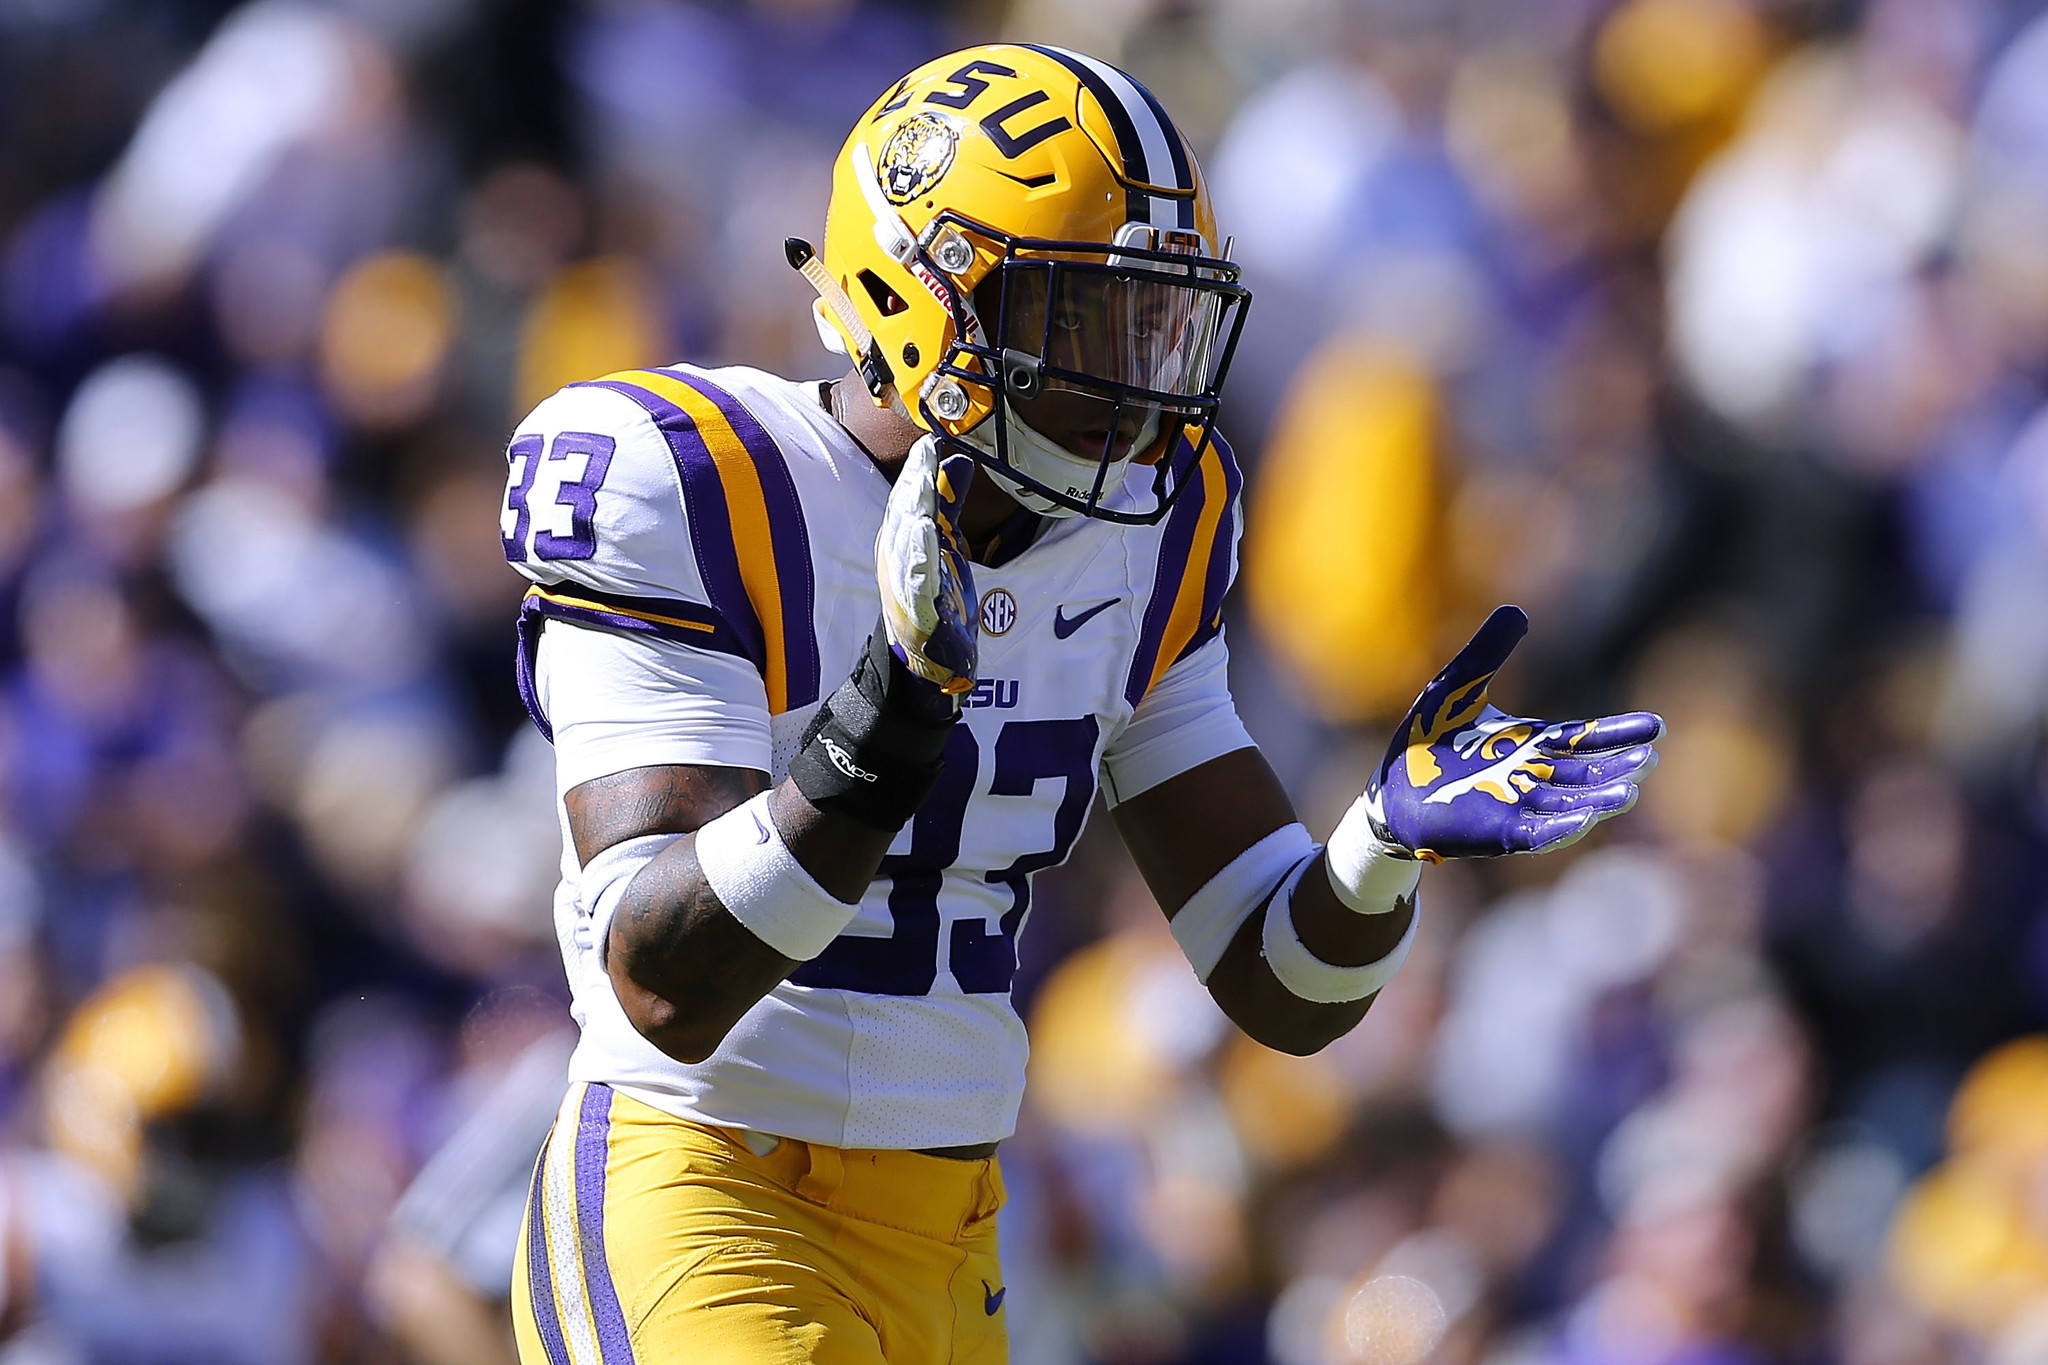 Bears' defensive back needs spotlight three candidates for No. 3 pick